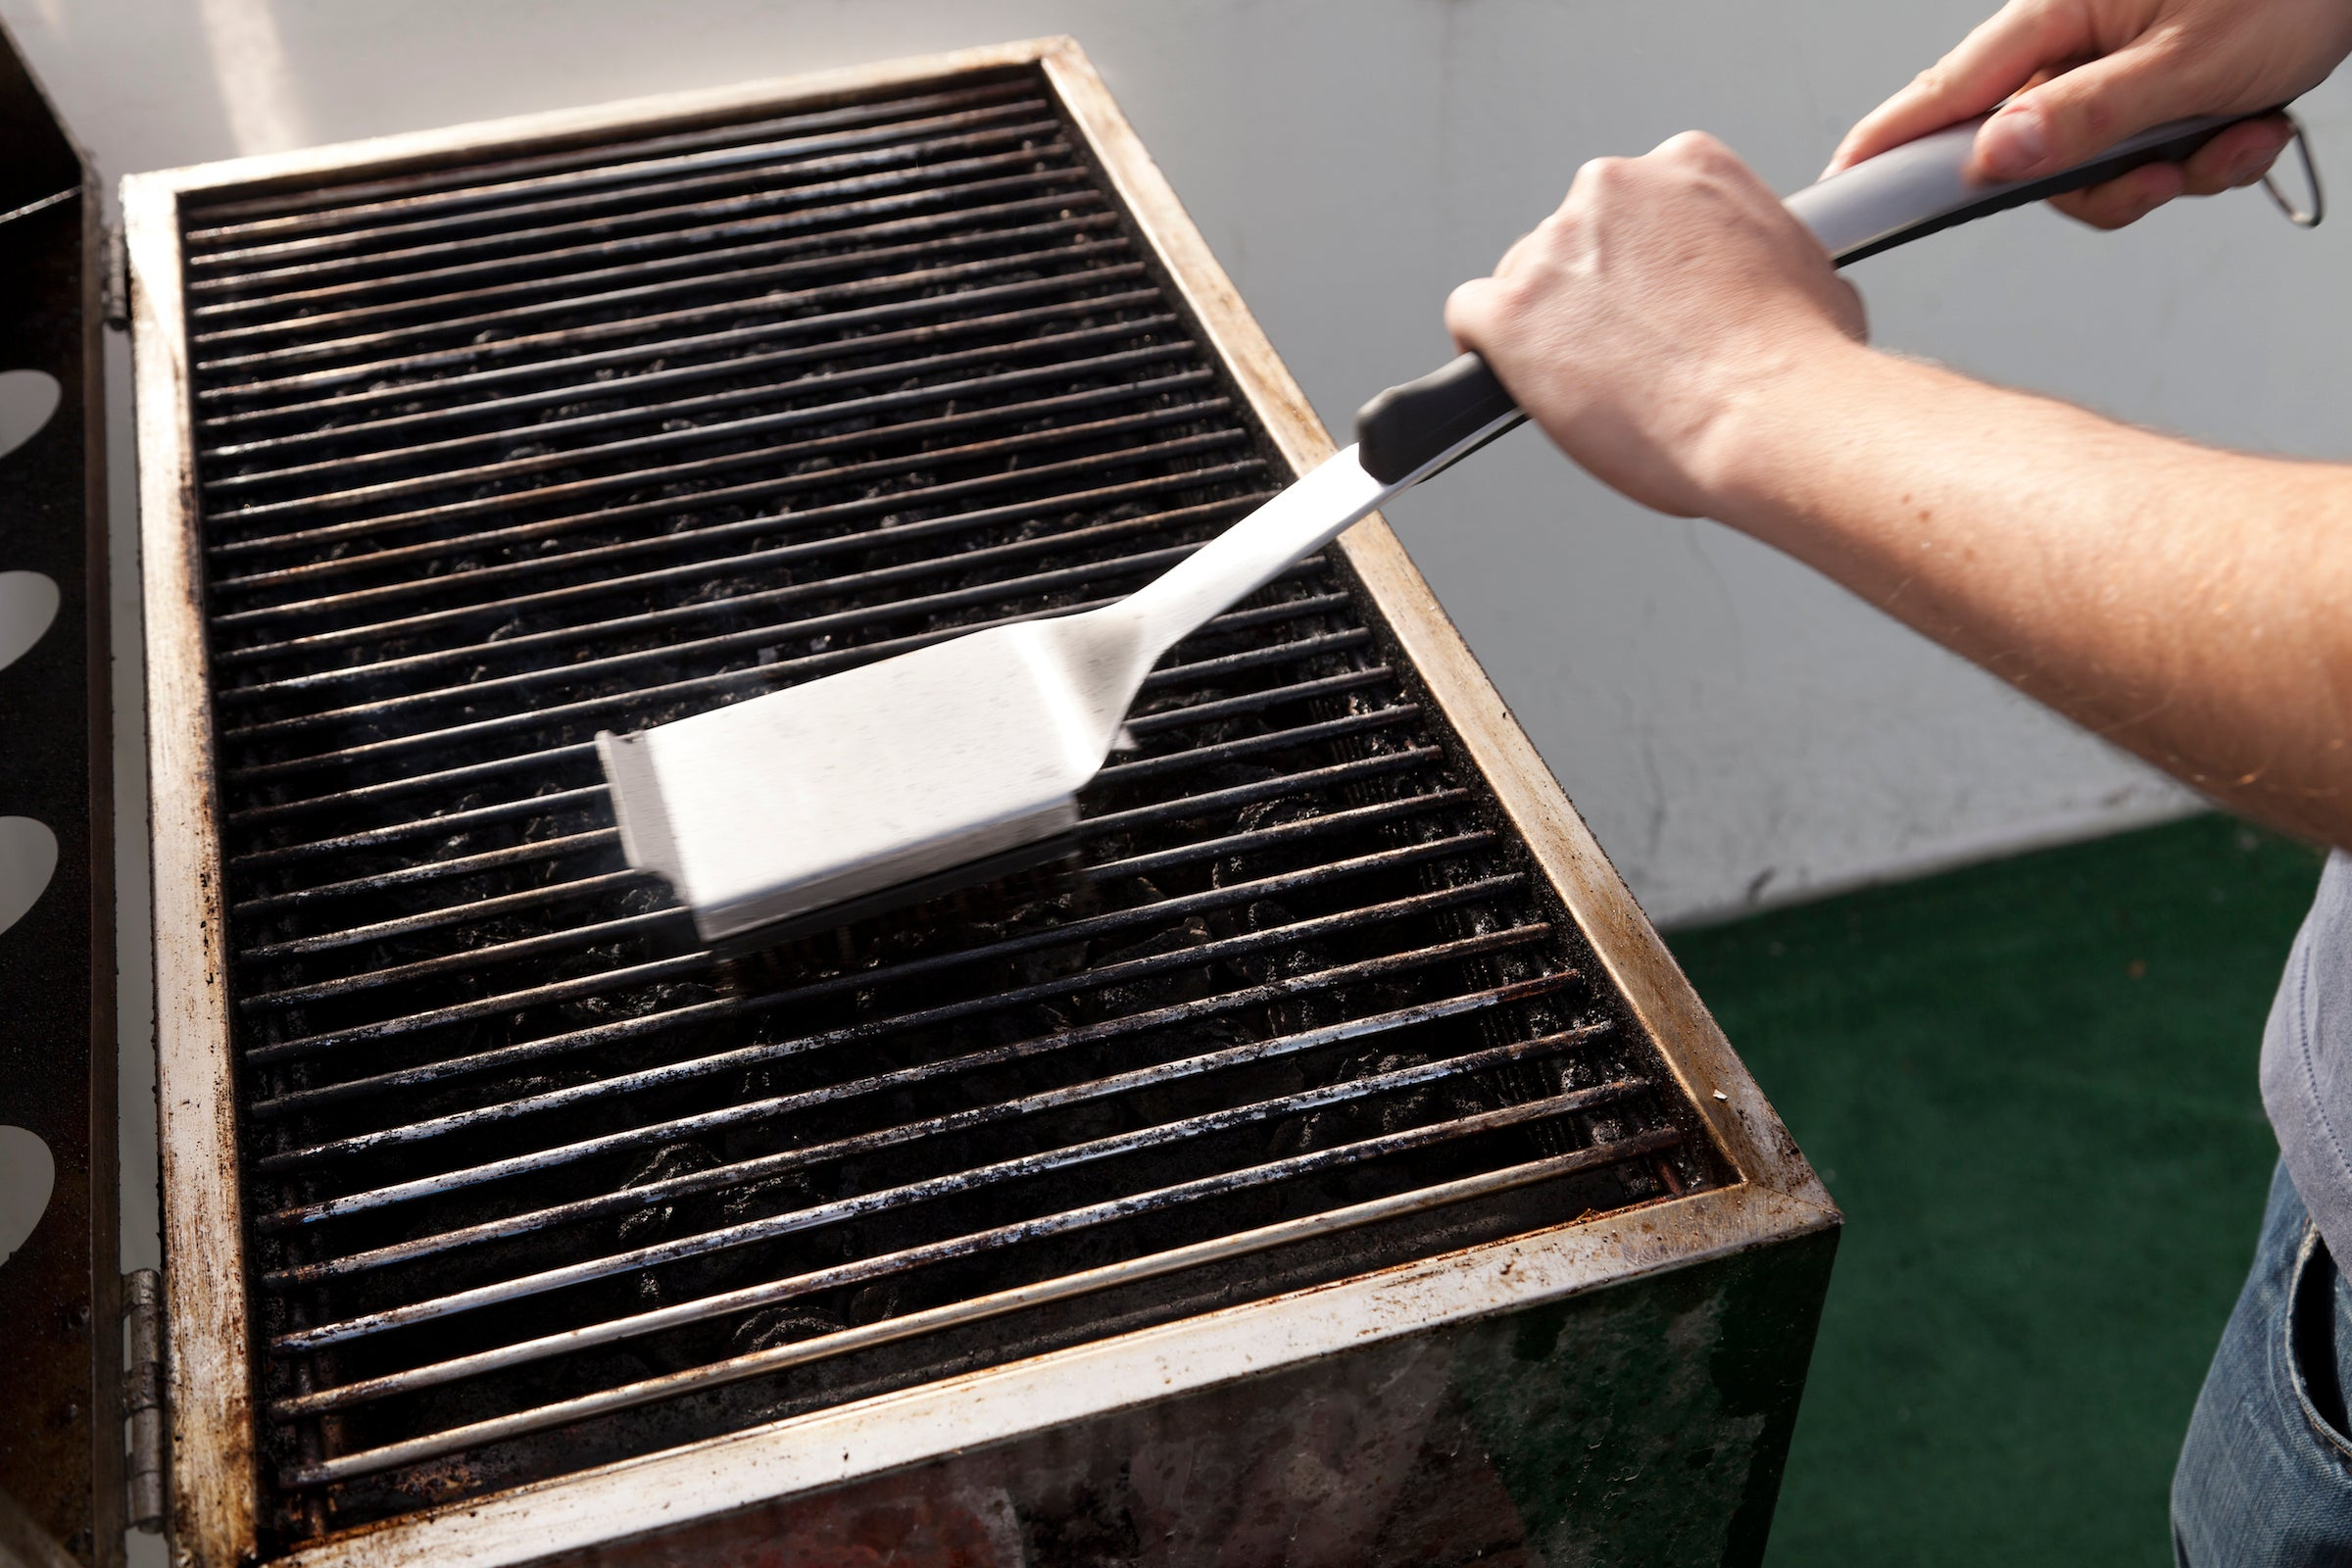 cleaning the grill before use